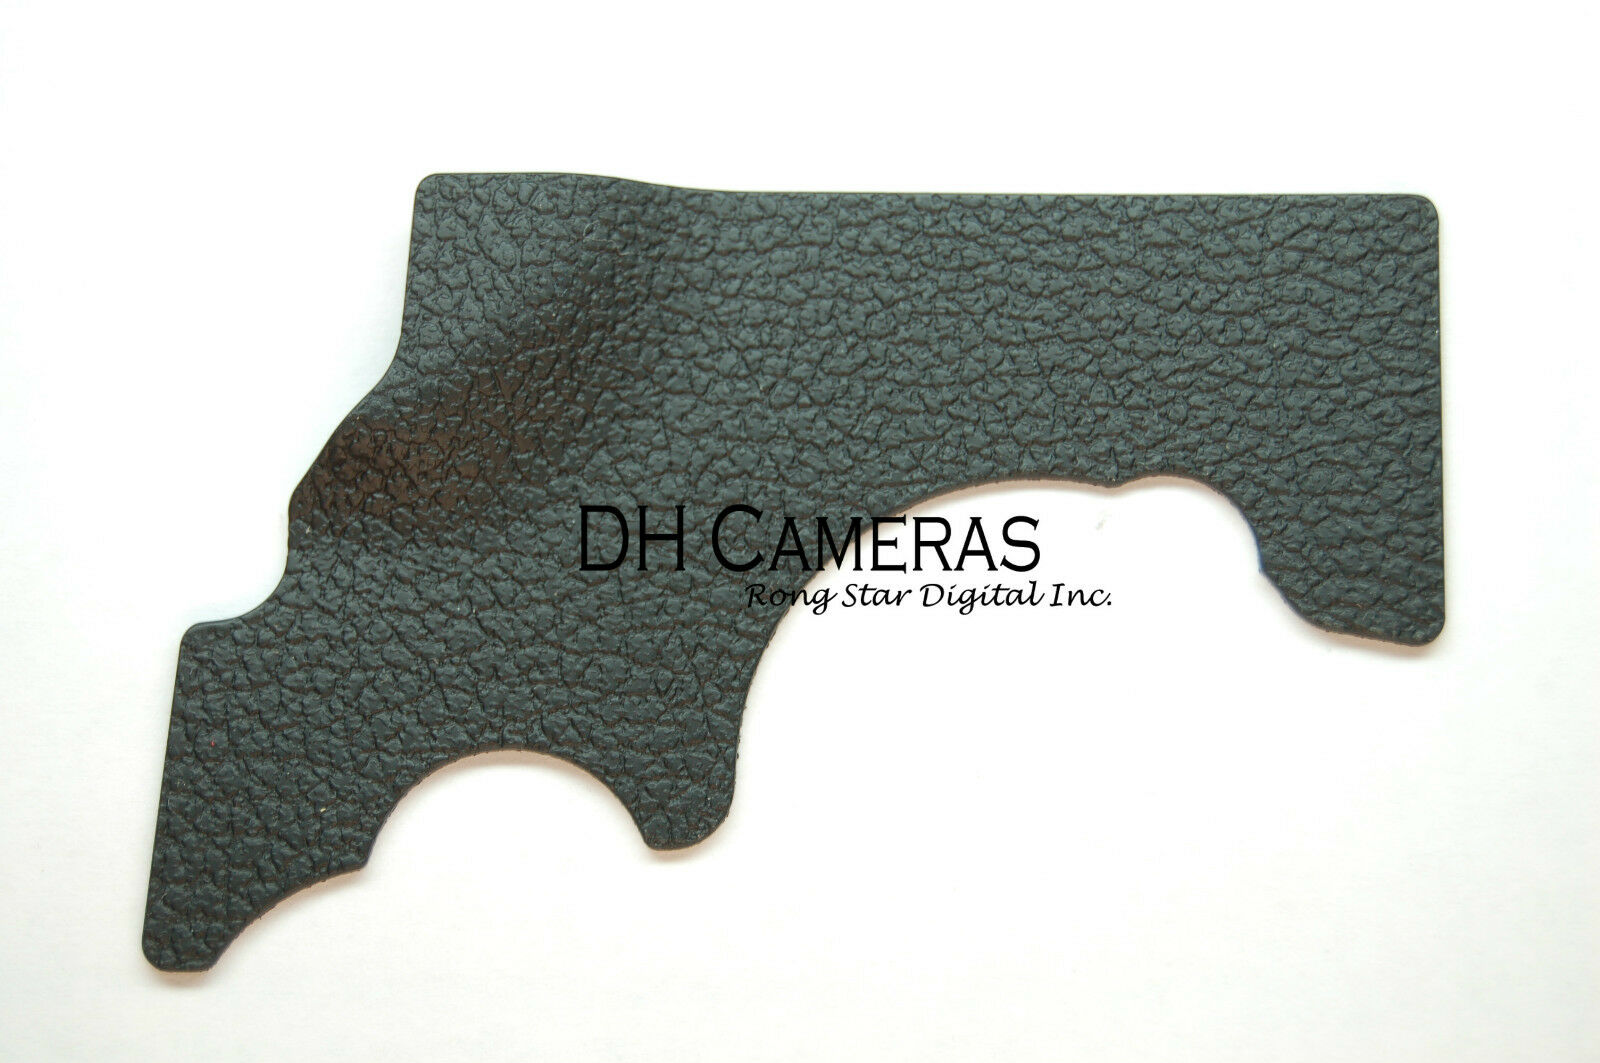 Canon Eos 5d Mark Ii Camera Rear Right Rubber Grip And Tape Cb3-4939-000